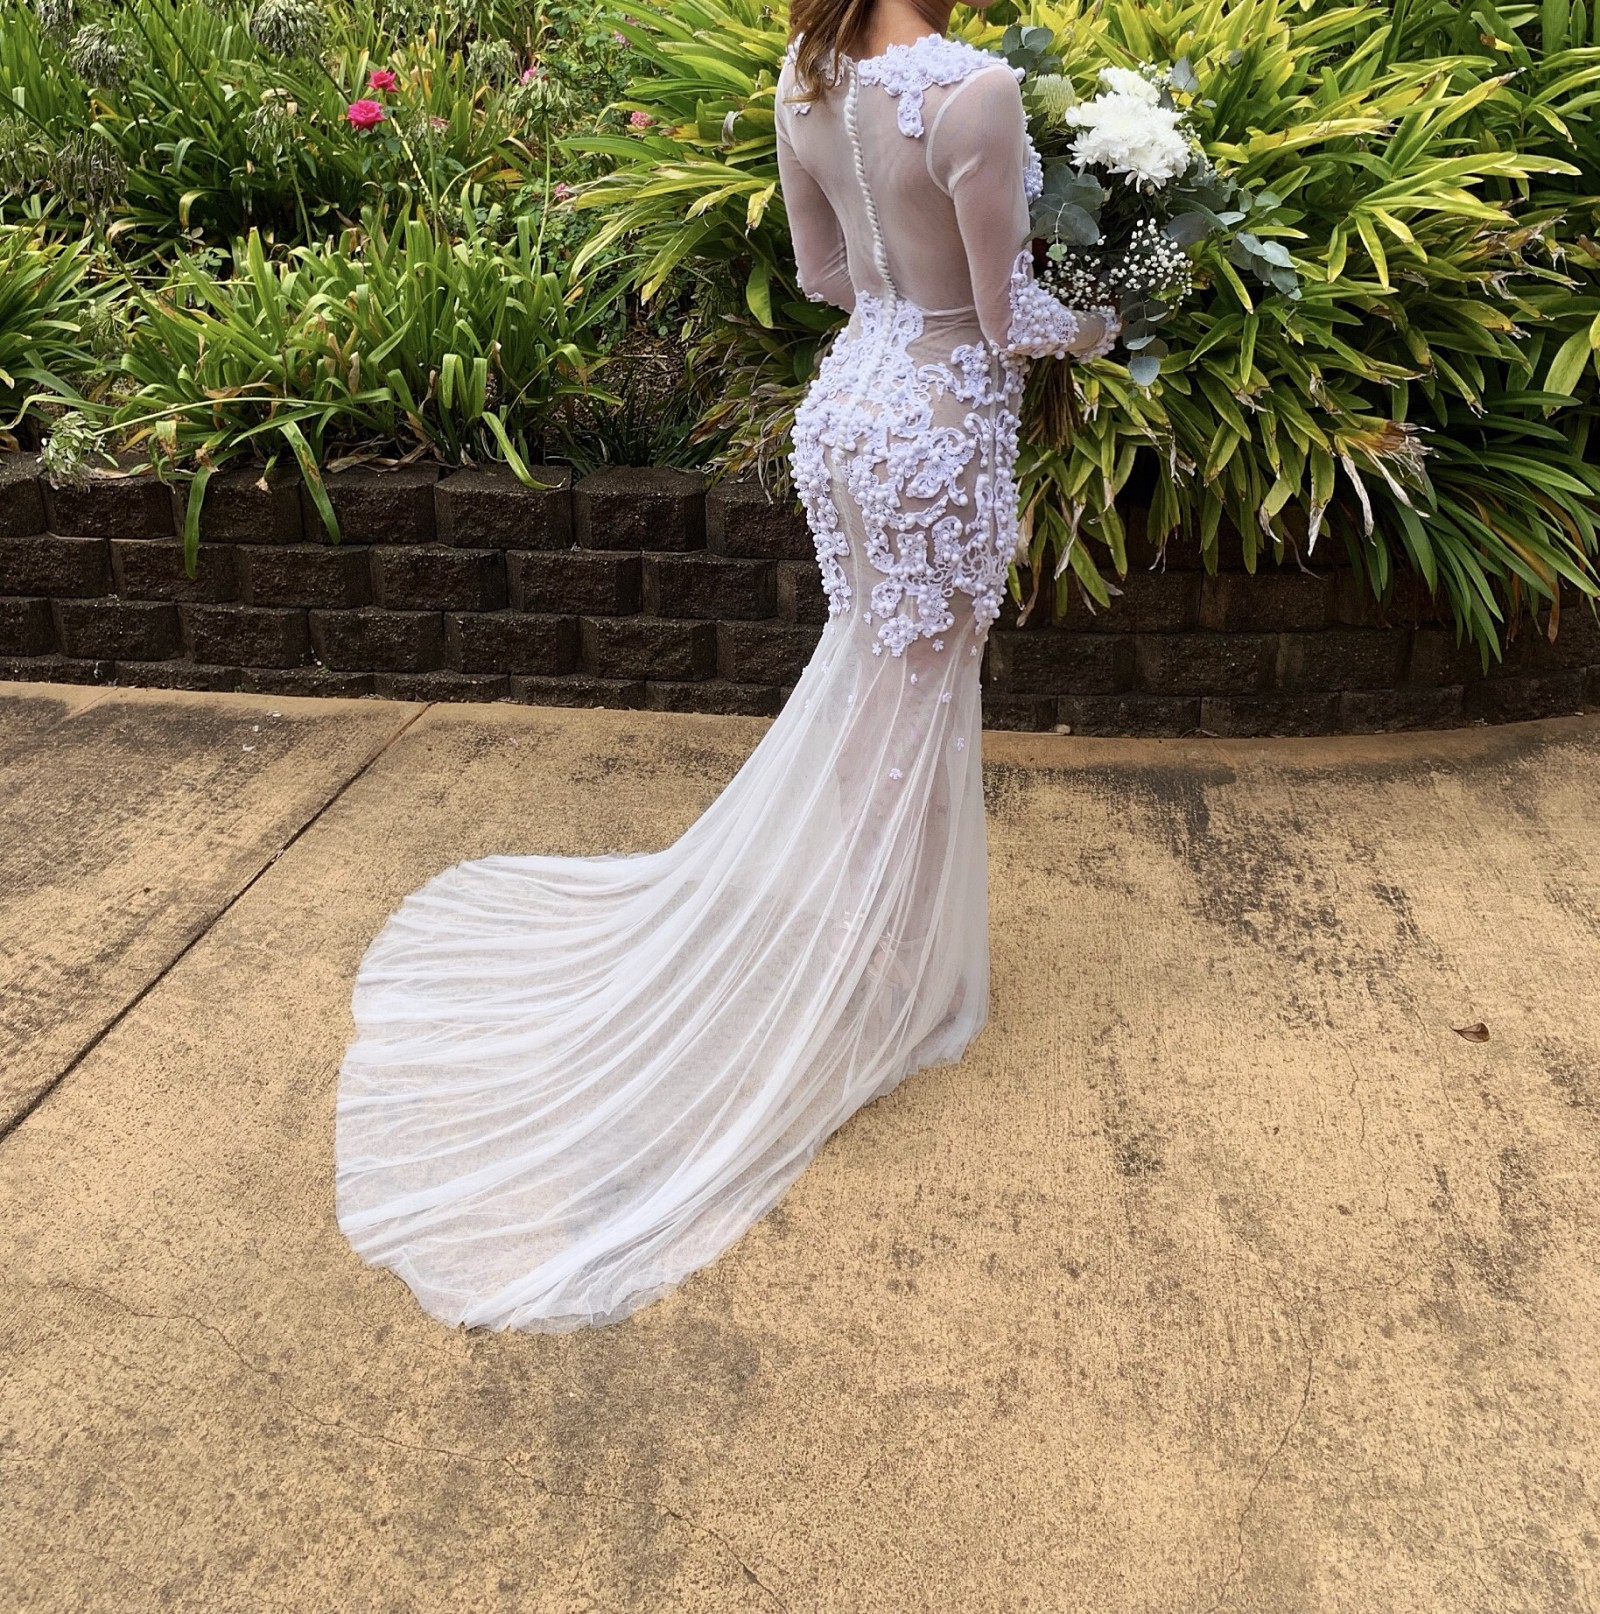 Elly Sofocli Custom Made Second Hand Wedding Dress On Sale